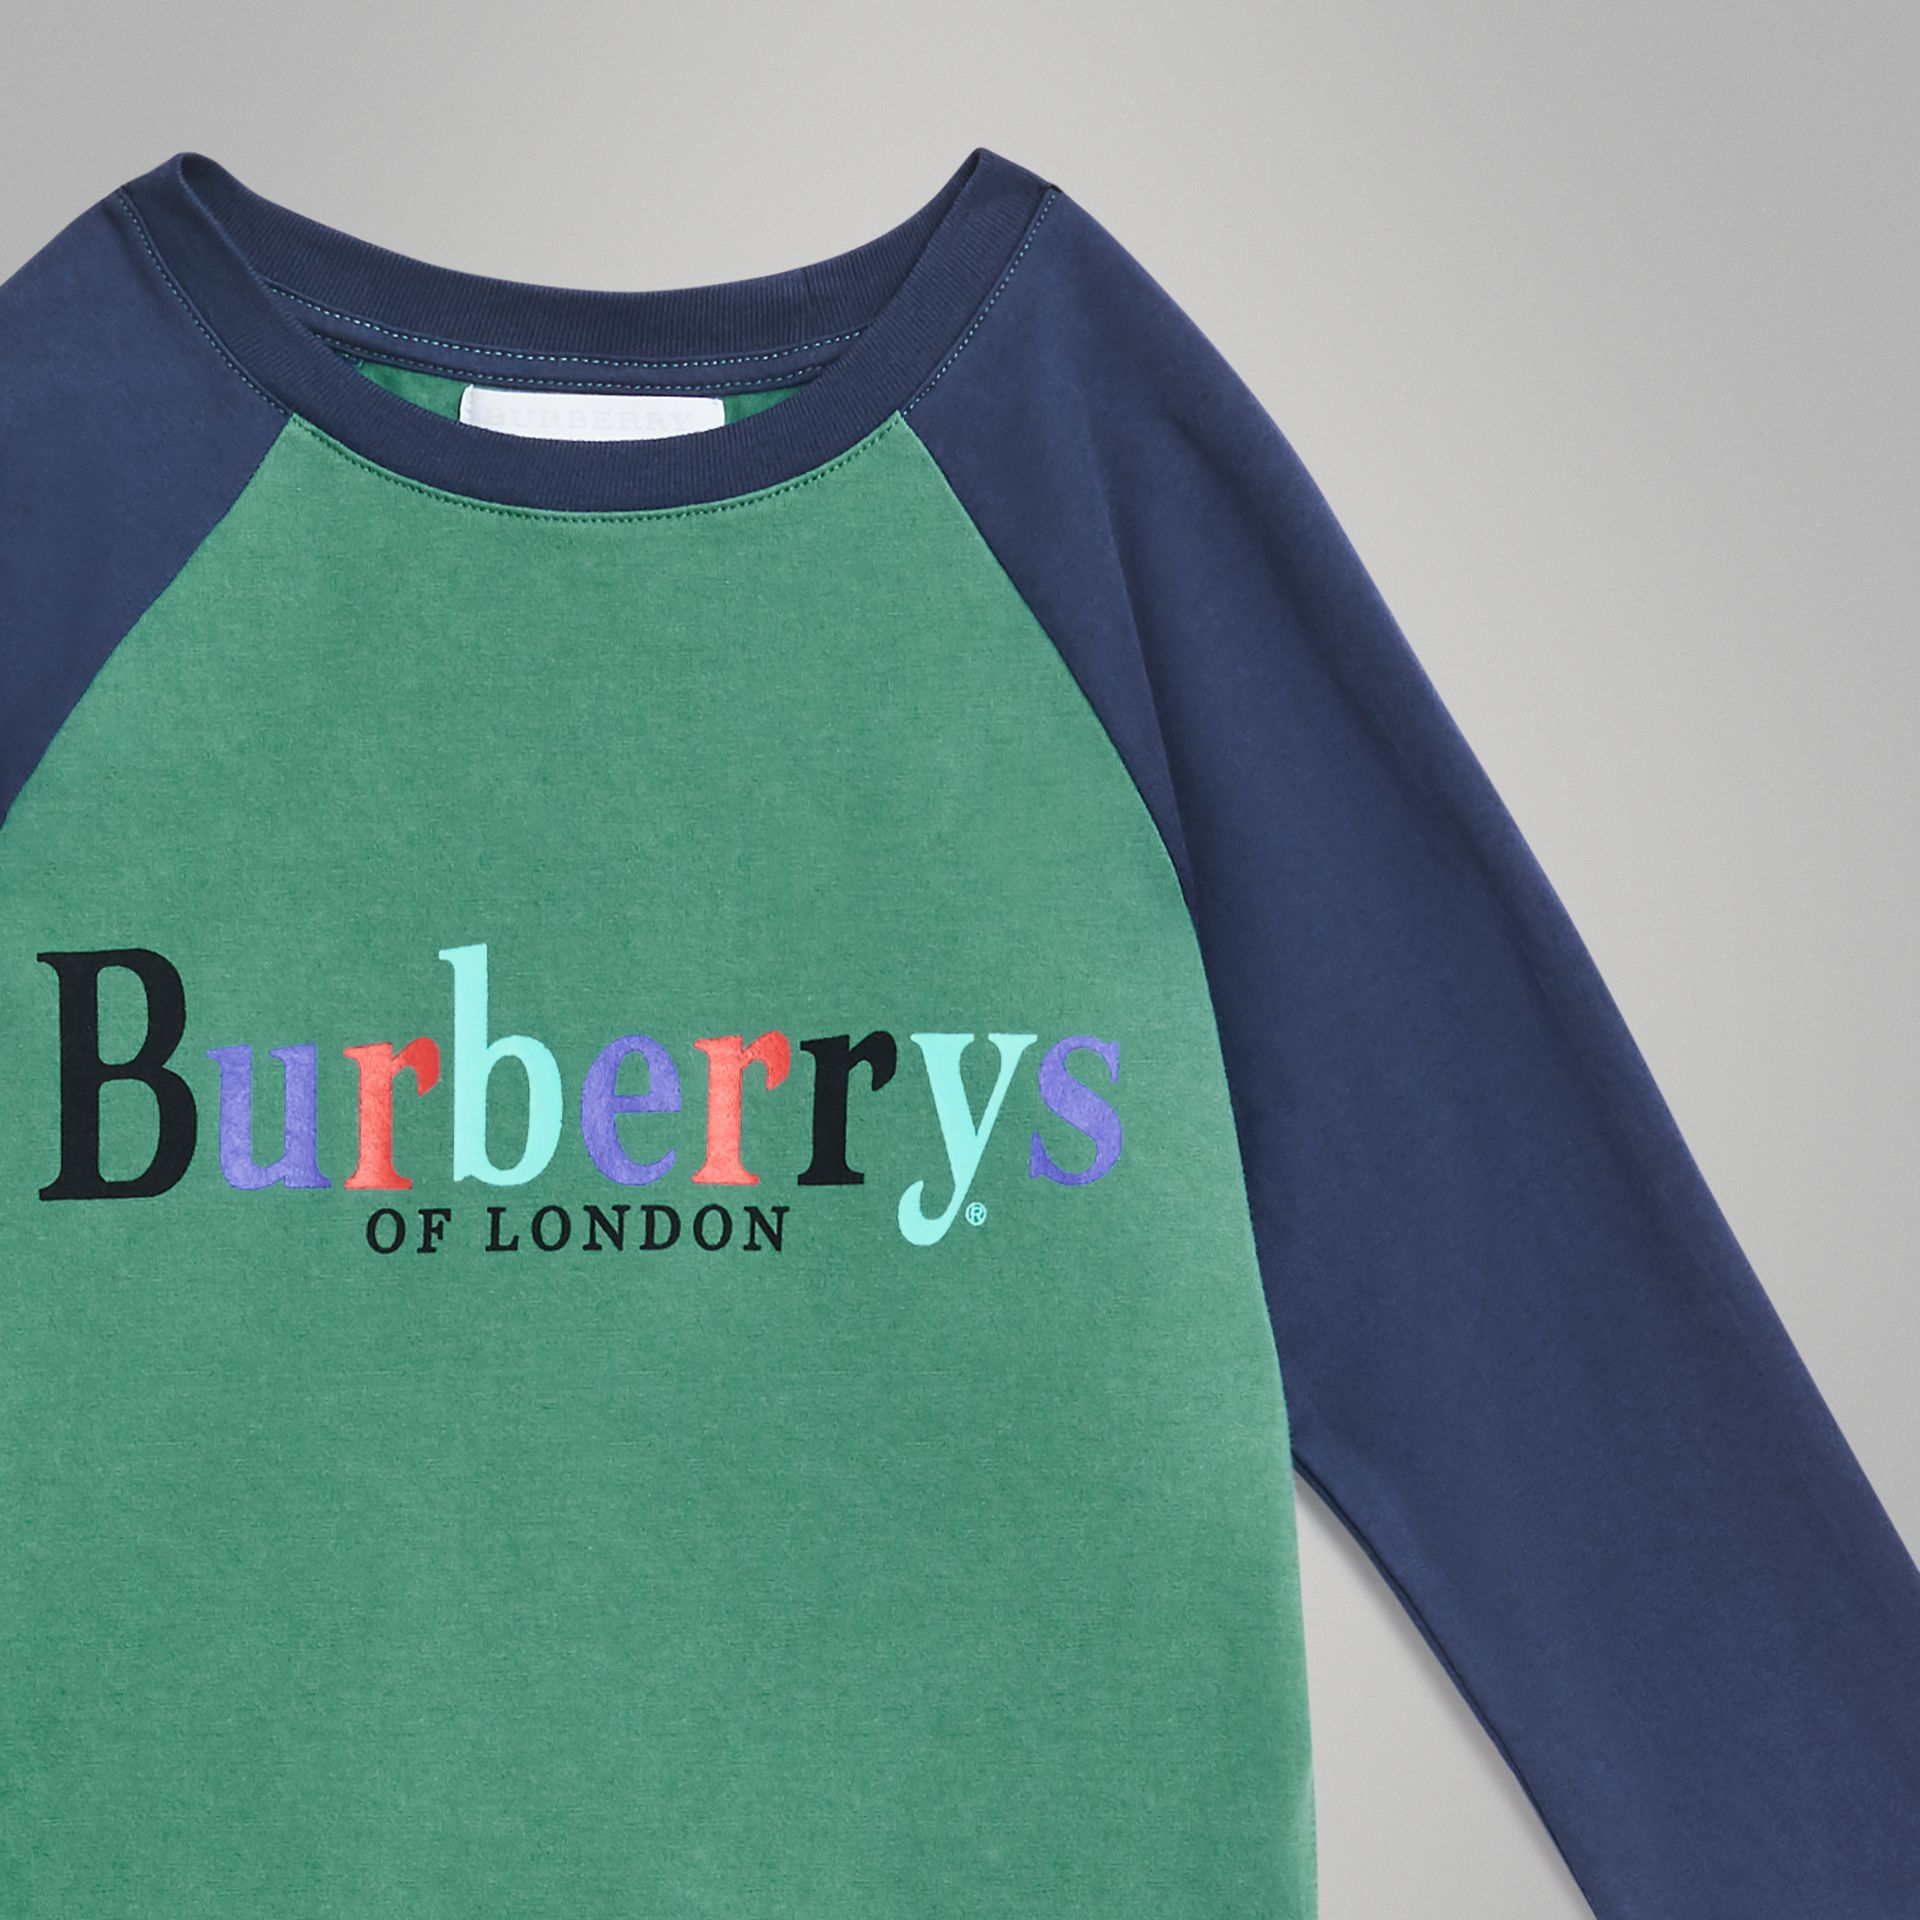 Archive Logo Print Two-tone Cotton Top in Bright Pigment Green | Burberry - gallery image 4